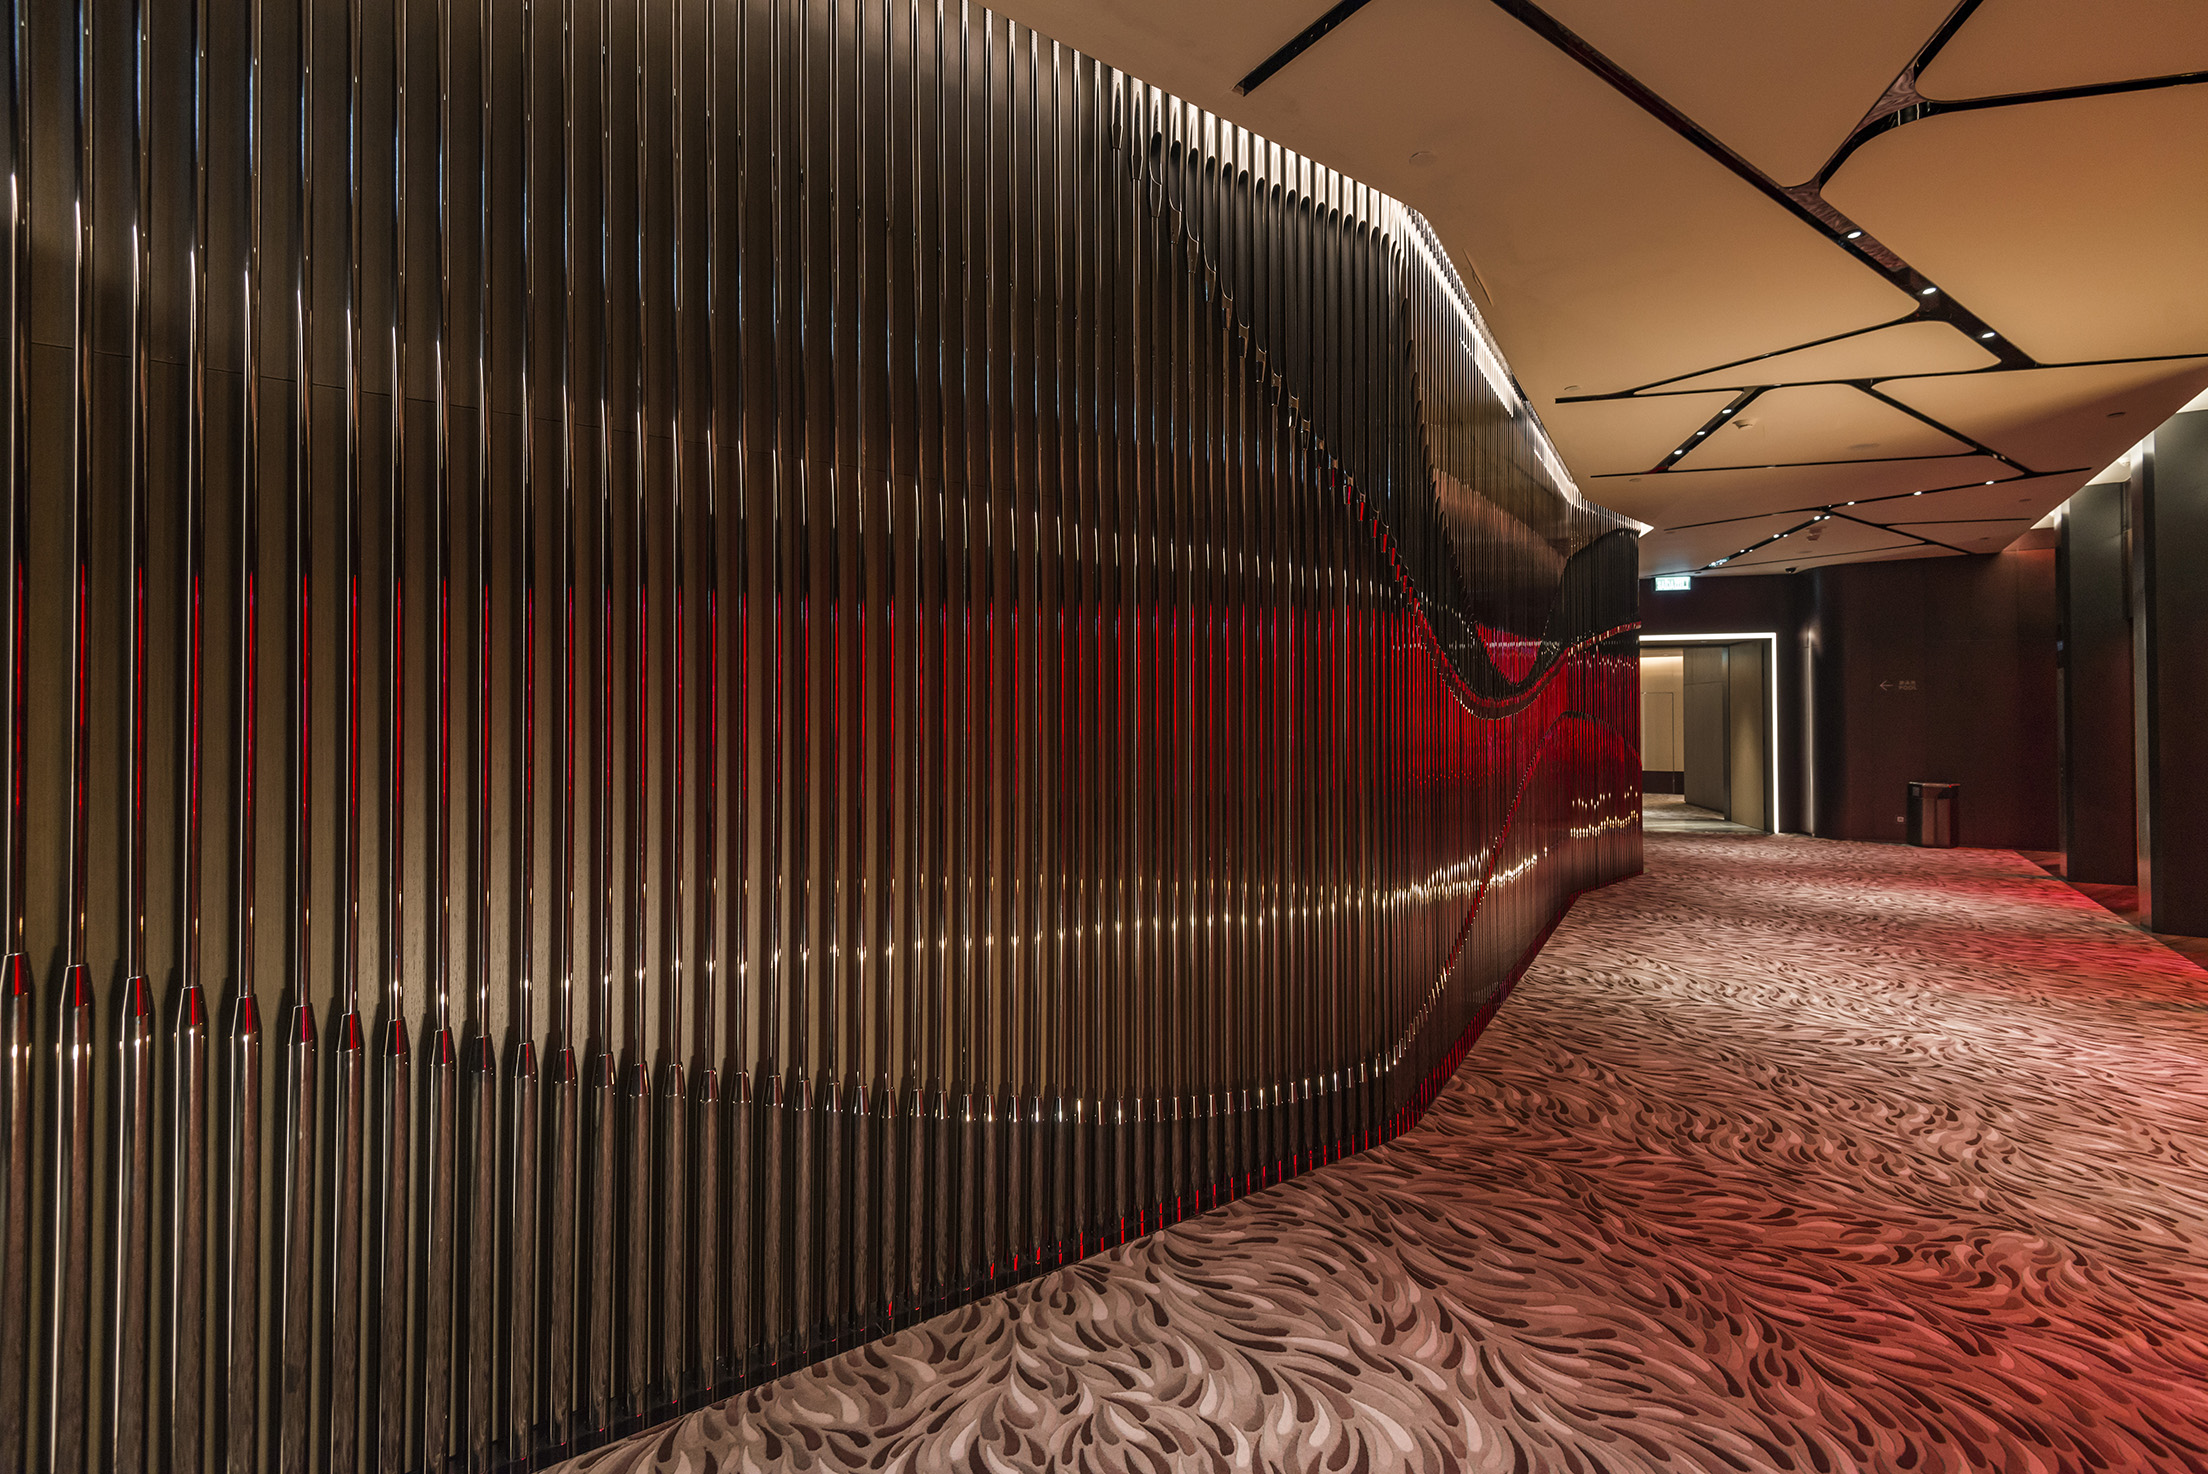 jeb-customprojects-metal-screen-morpheus-hotel-macau-01.jpg